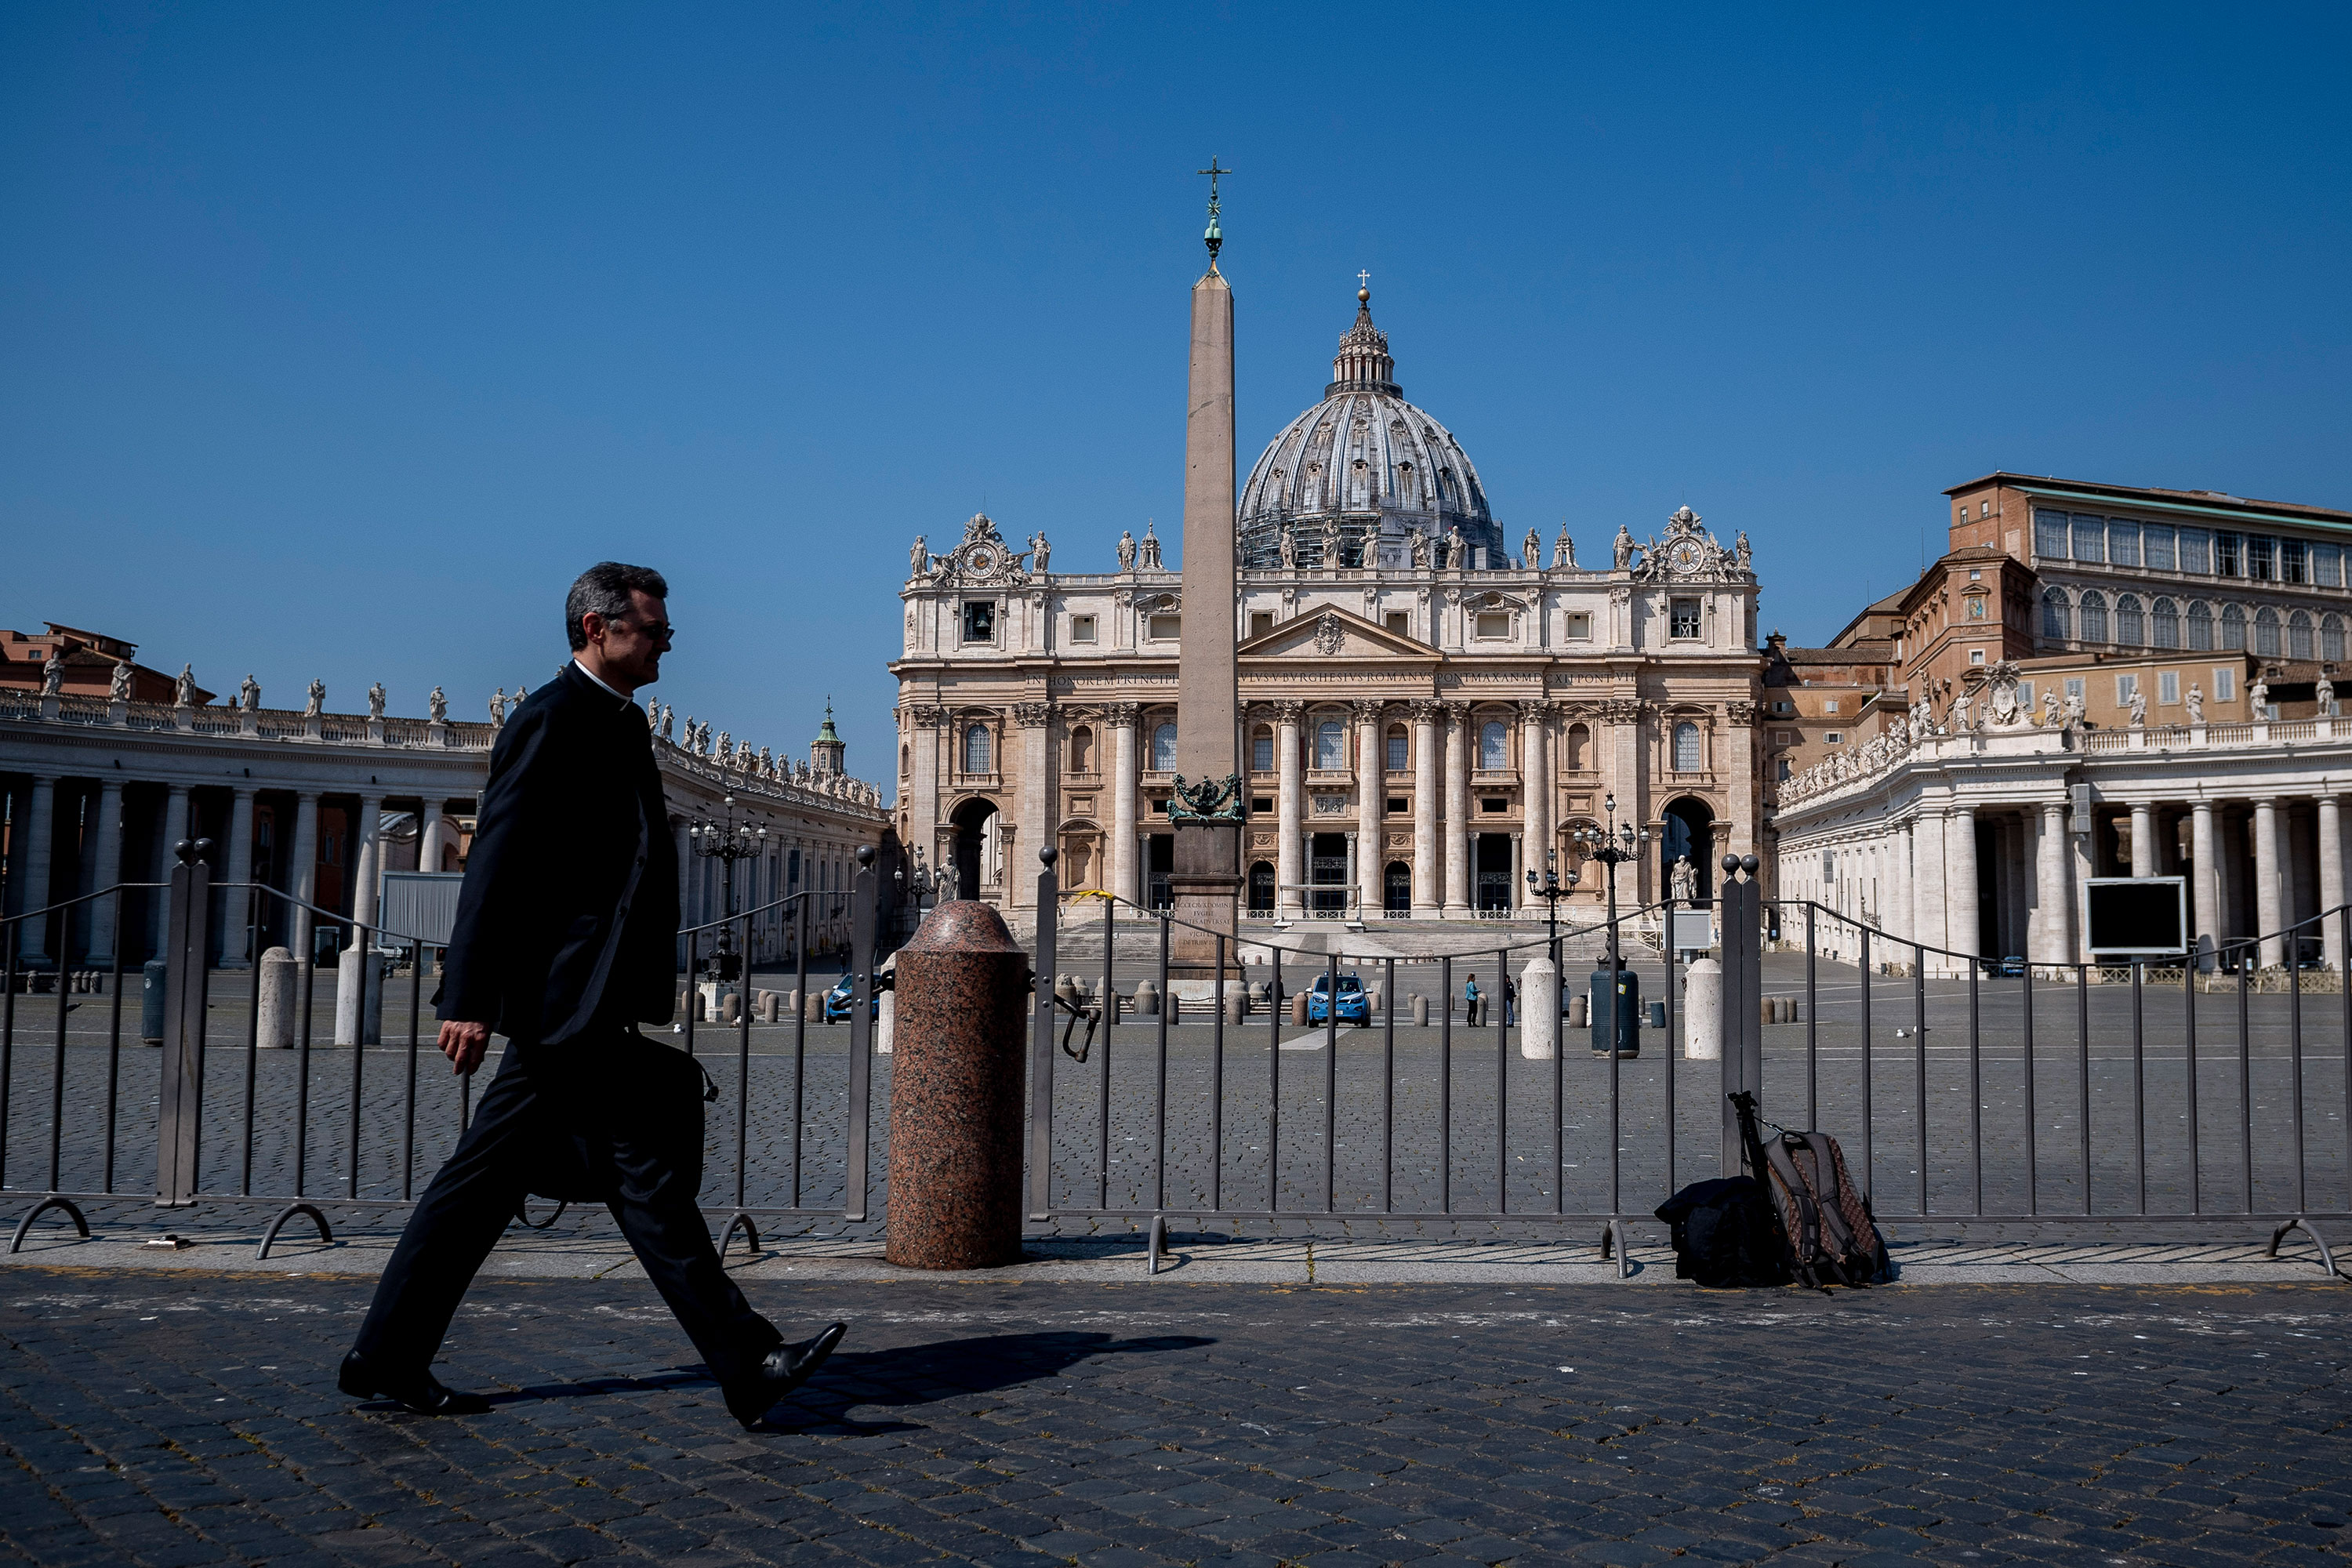 A priest walks in St. Peter's Square on April 12.